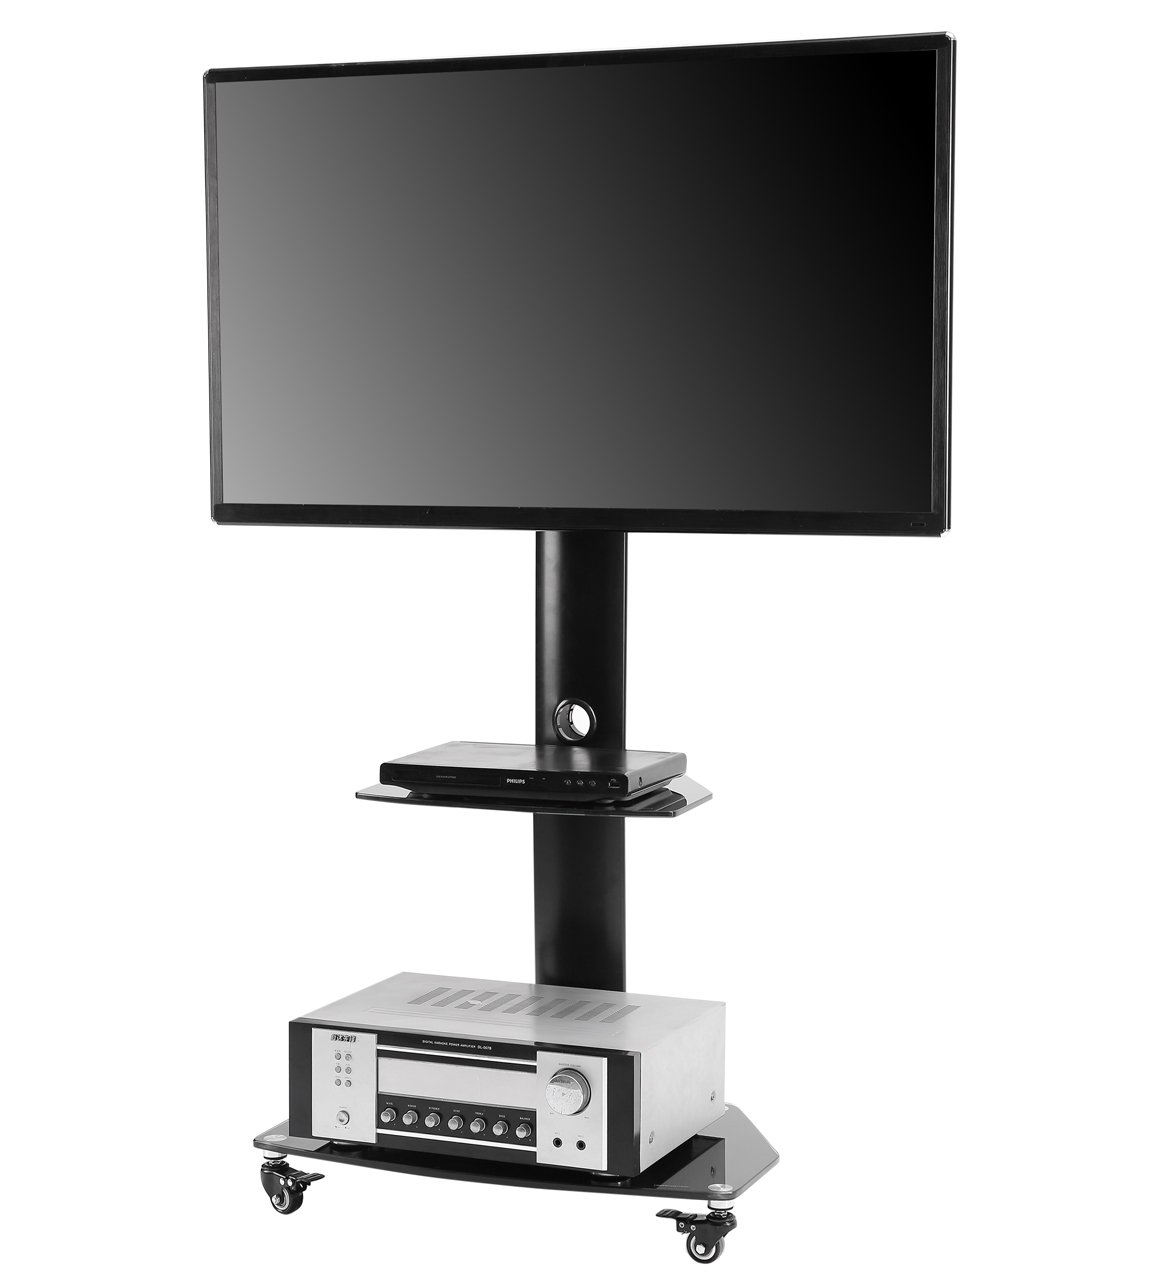 TAVR Rolling Floor Stand Mobile TV Cart with Universal Swivel Mount Wheels and Glass Shelf for 27''- 55'' Flat Curved Screen, Black TF9001